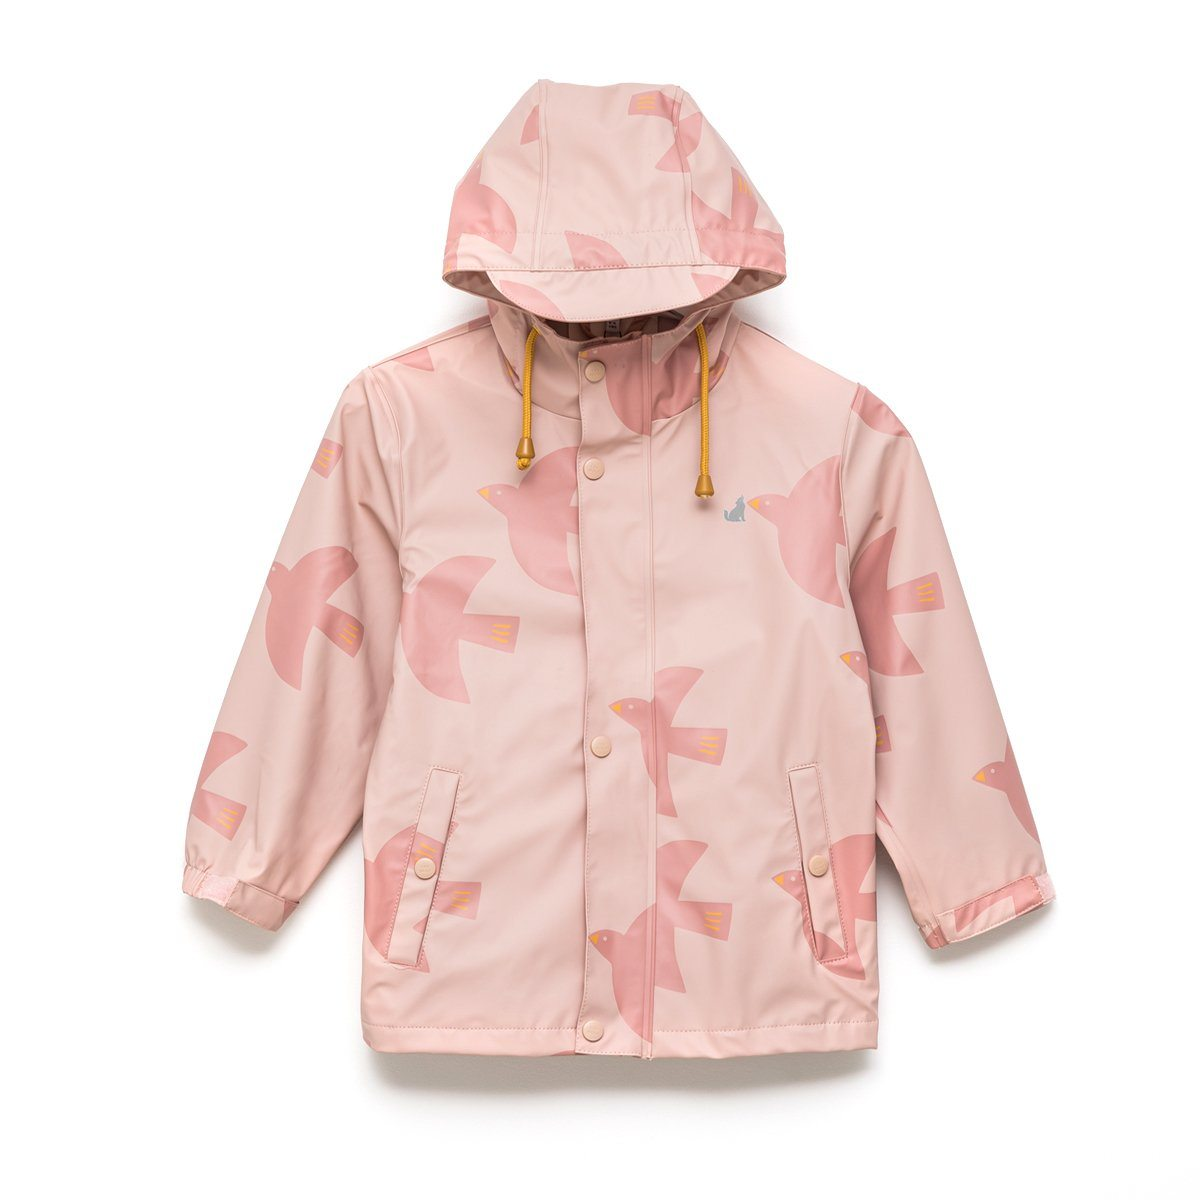 Play Jacket (Birds)